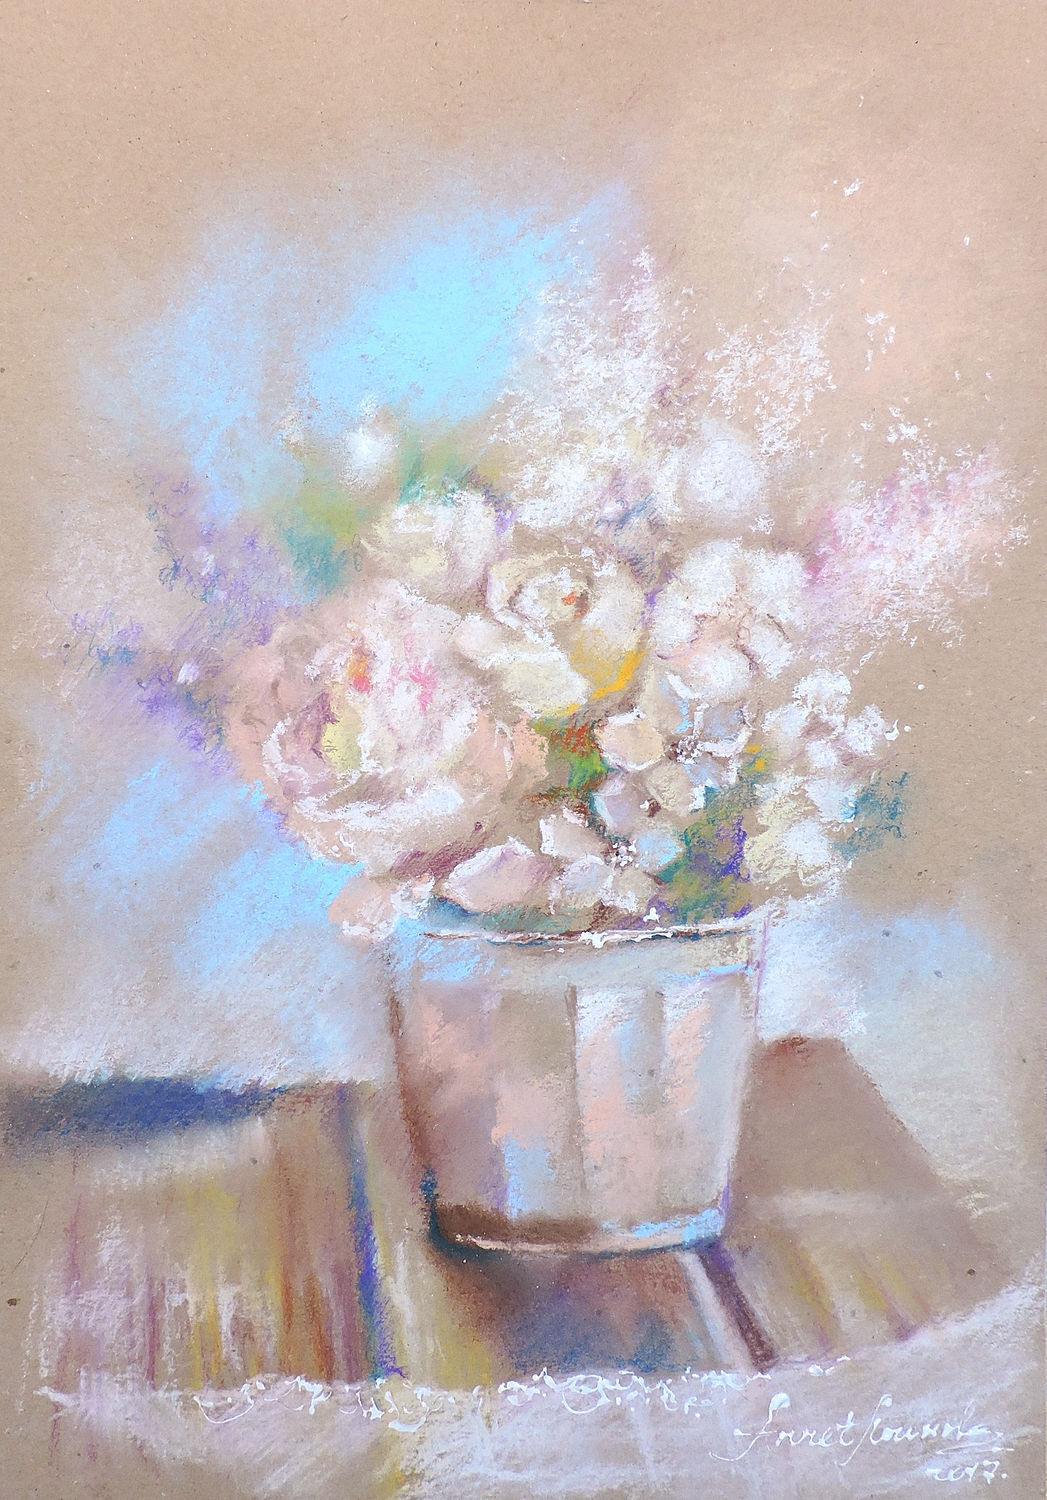 Caramel morning - painting with pastels, Pictures, Moscow,  Фото №1